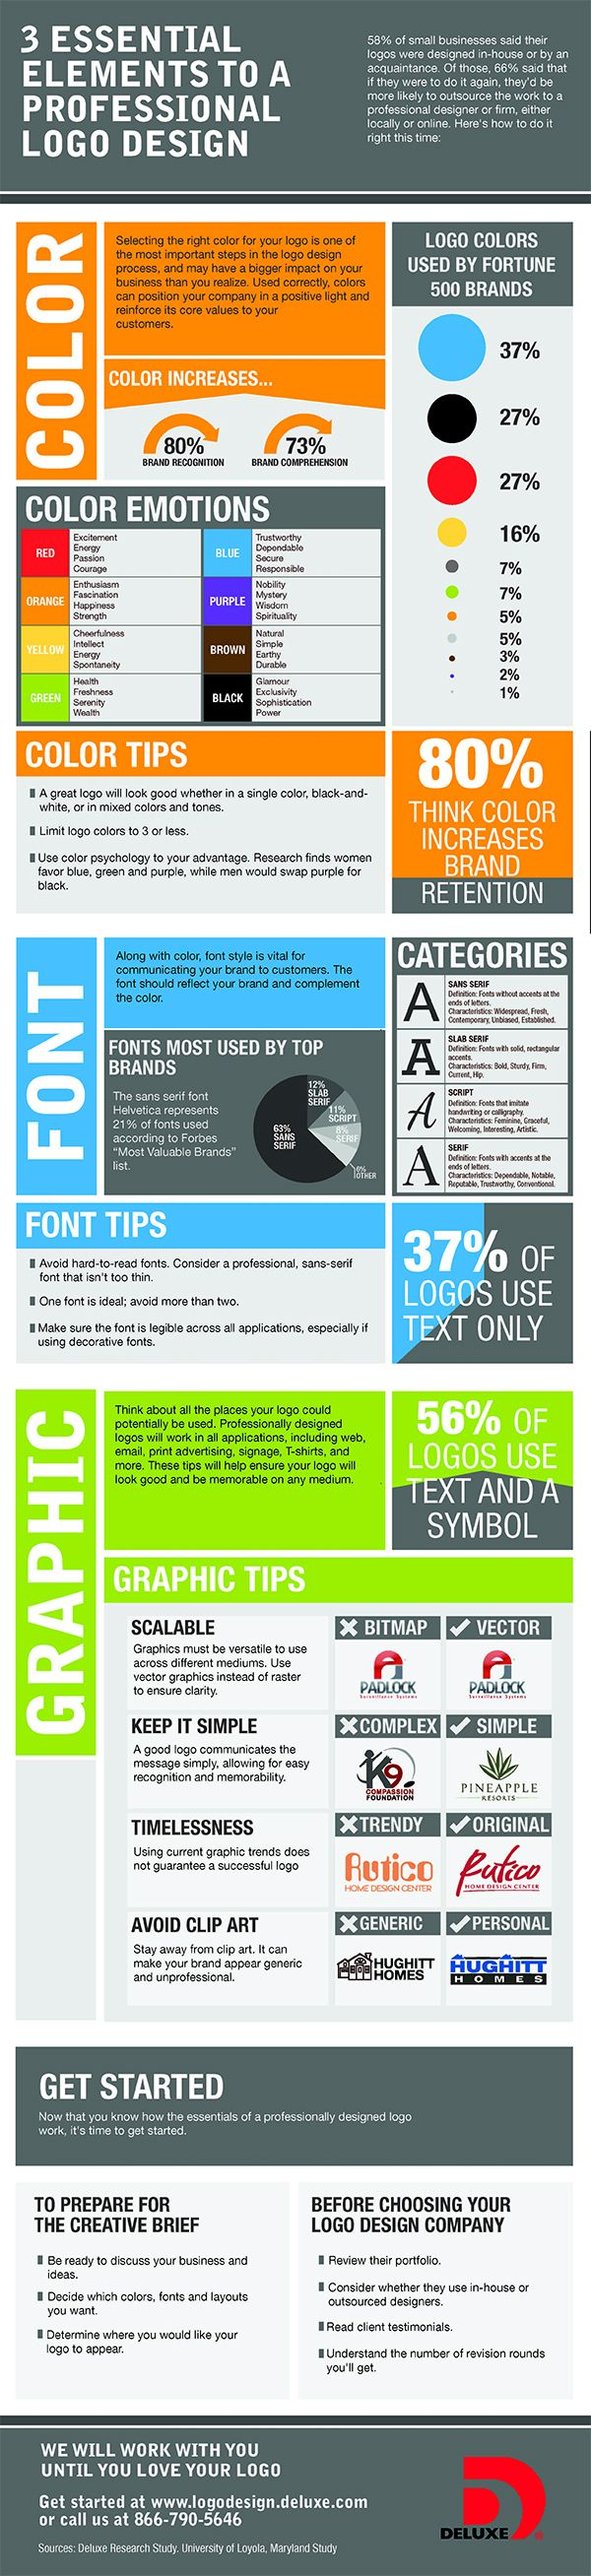 Logo Basics 3 Essential Elements to a Professional Logo Design